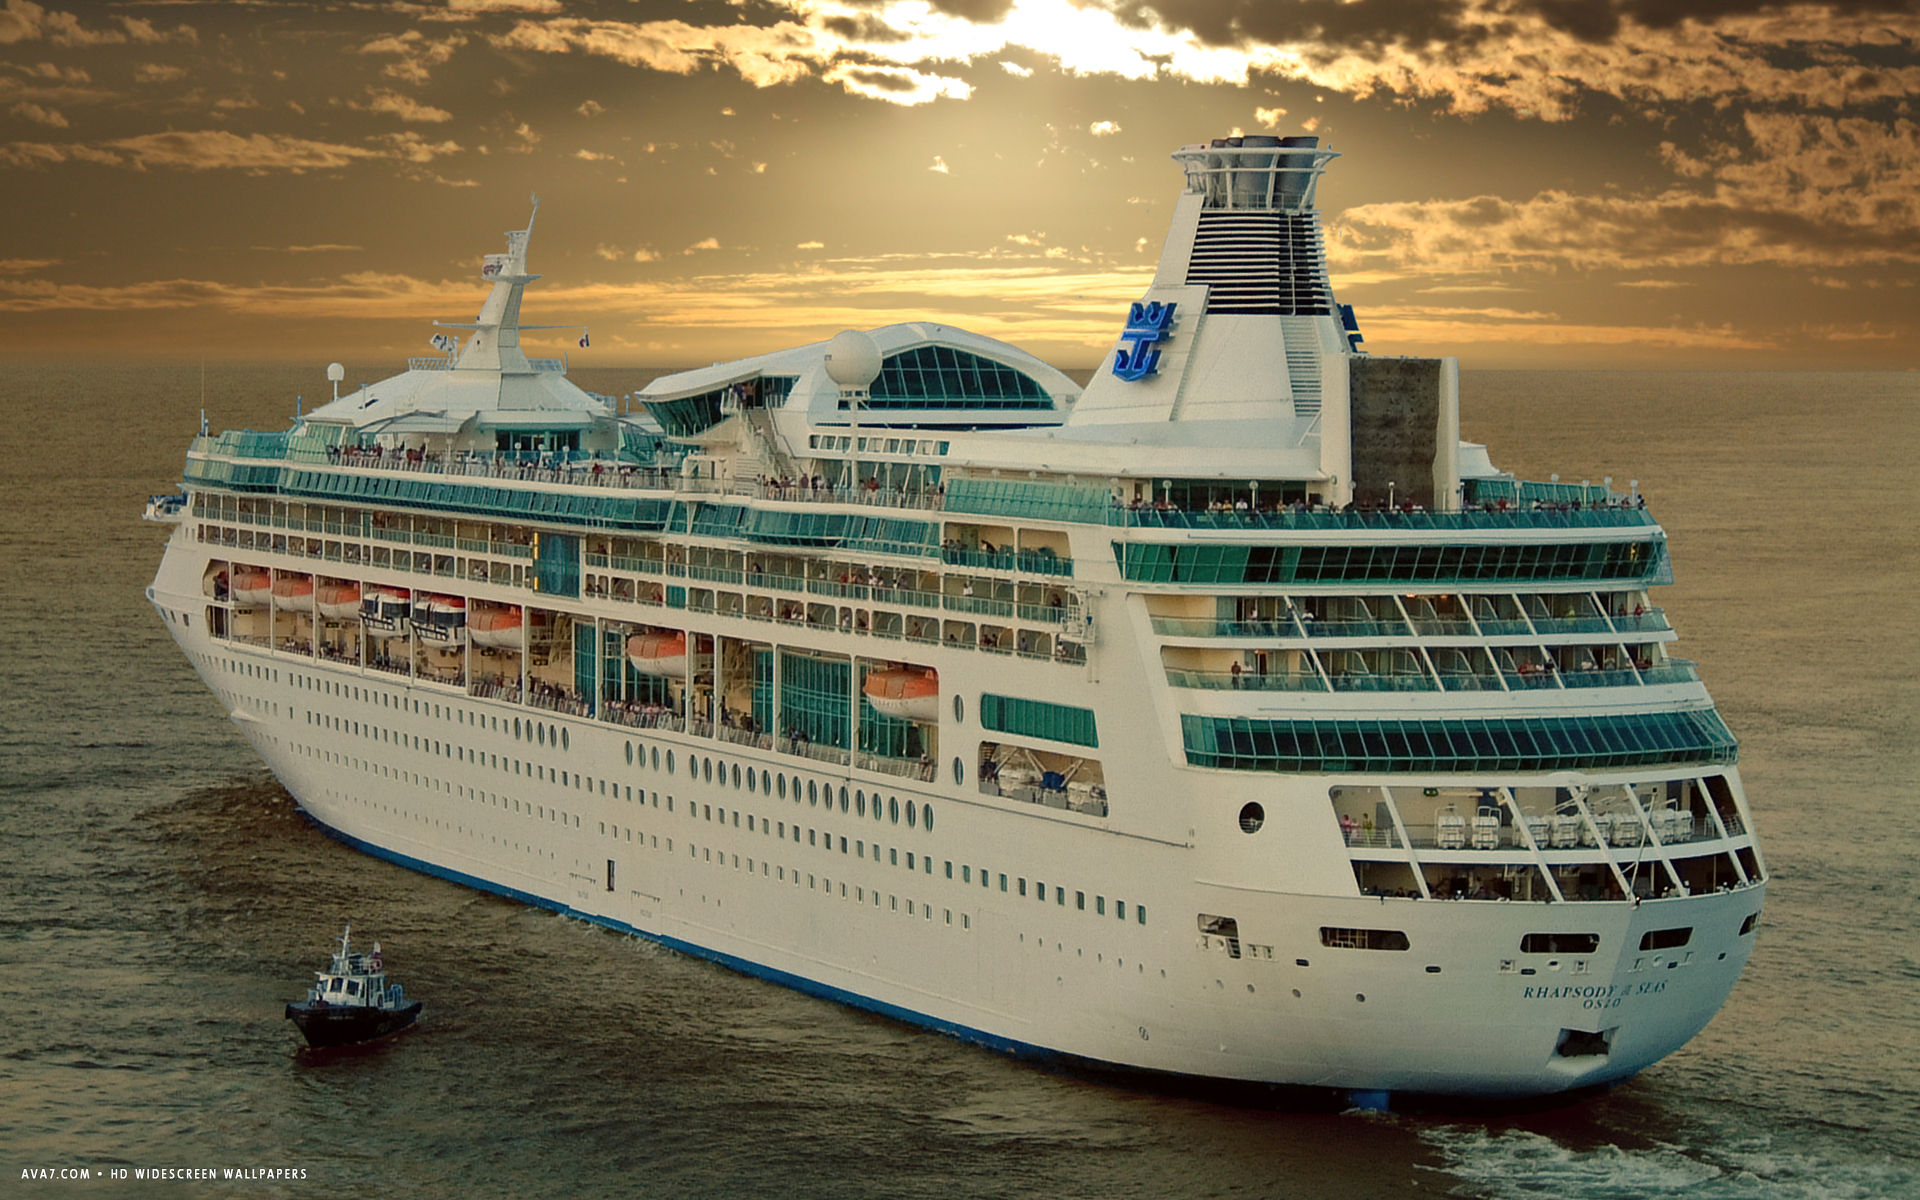 rhapsody of the seas cruise ship hd widescreen wallpaper